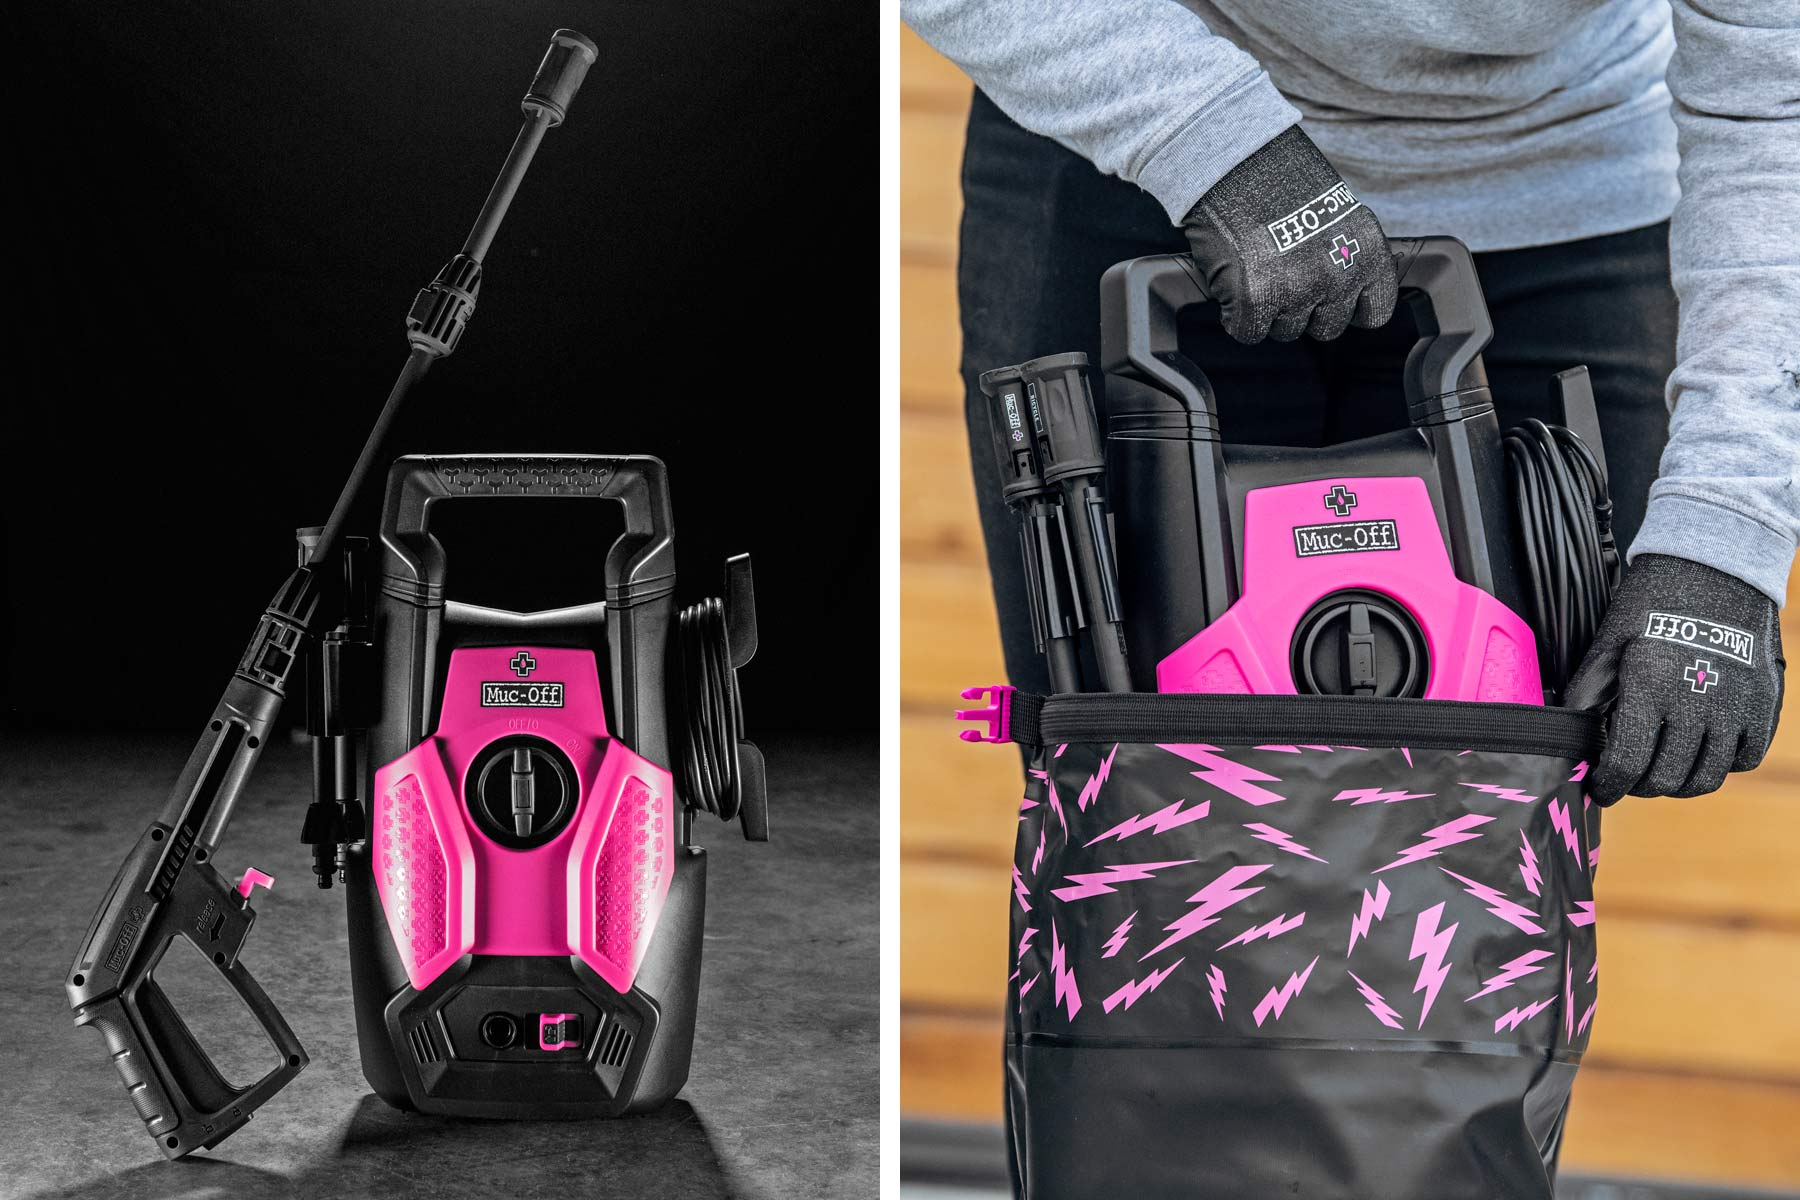 Muc-Off Pressure Washer, bike-specific deep clean road gravel cyclocross mountain bike cleaner